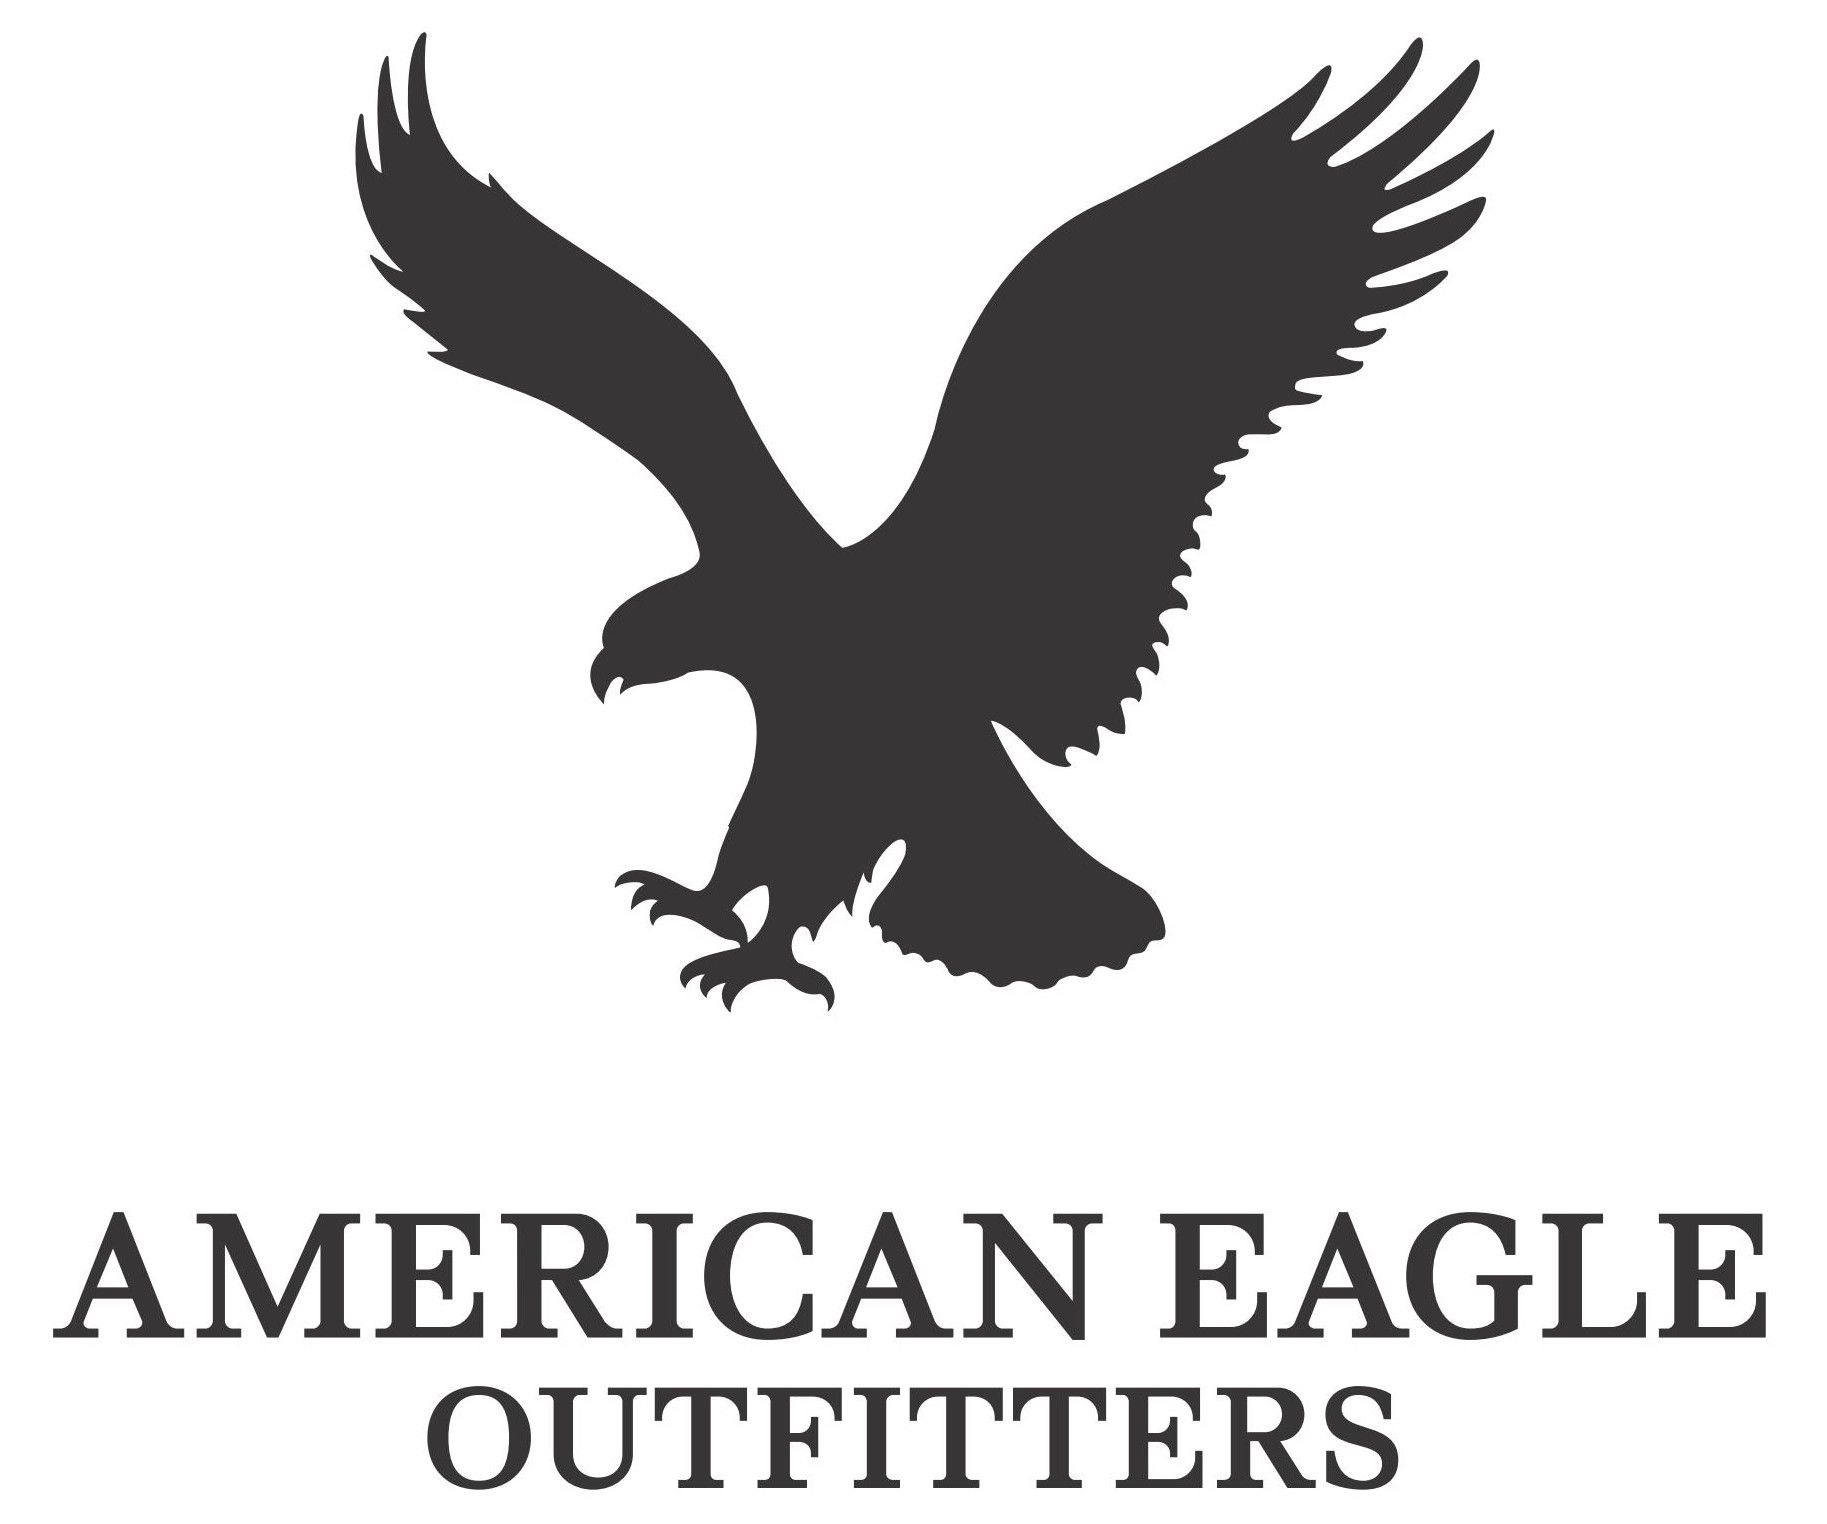 American Eagle 14% off $12.8 Ecard Gift Card Image